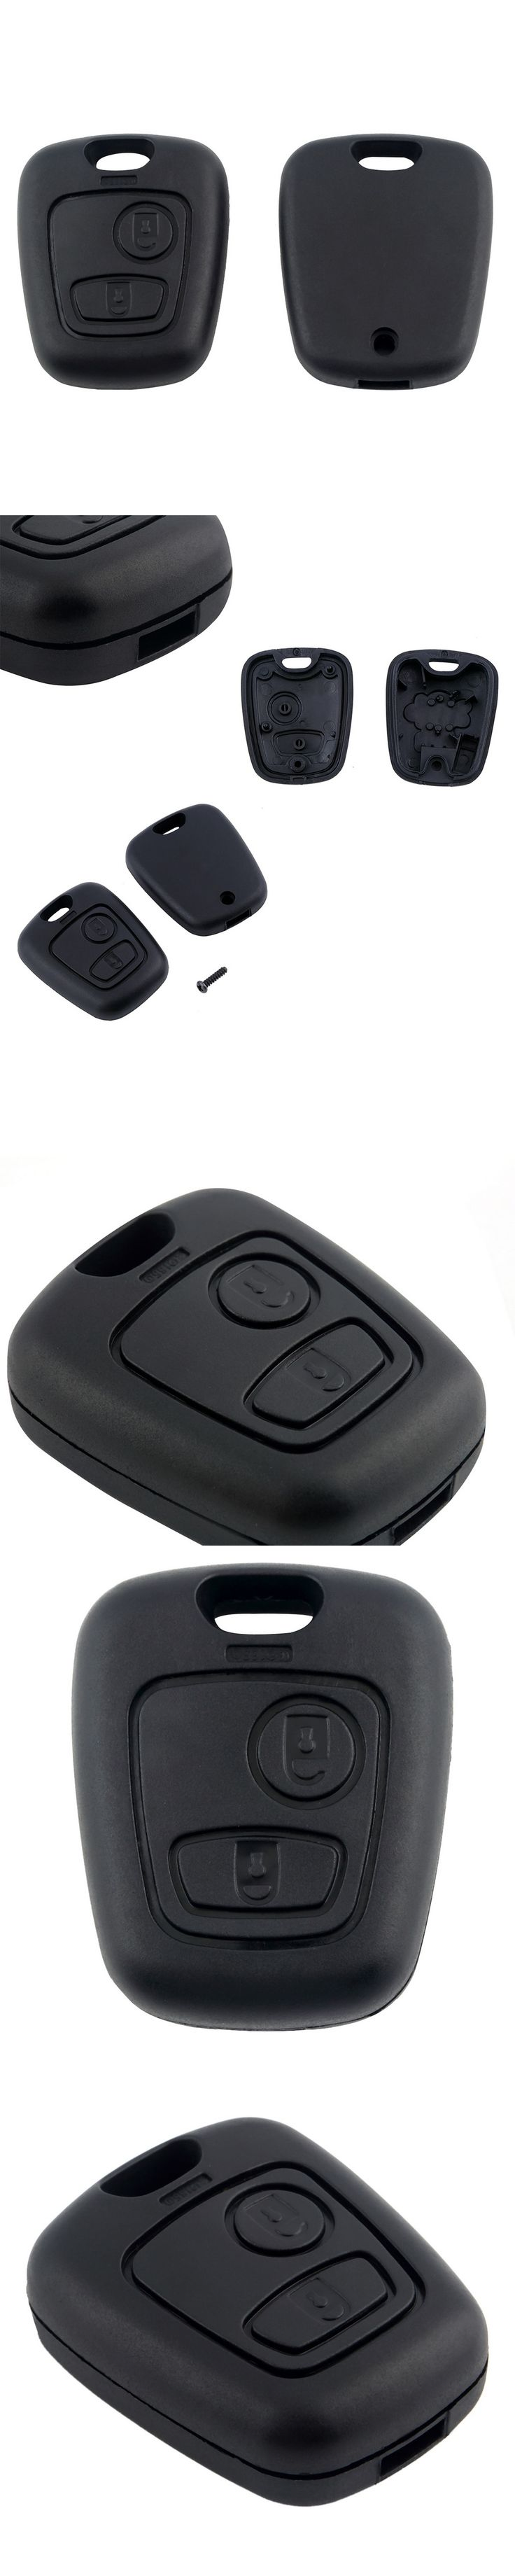 2 Button without Blade Remote Car Key Case Shell Fob For Citroen C1 C2 C3 Pluriel C4 C5 C8 for Xsara for Picasso Cover